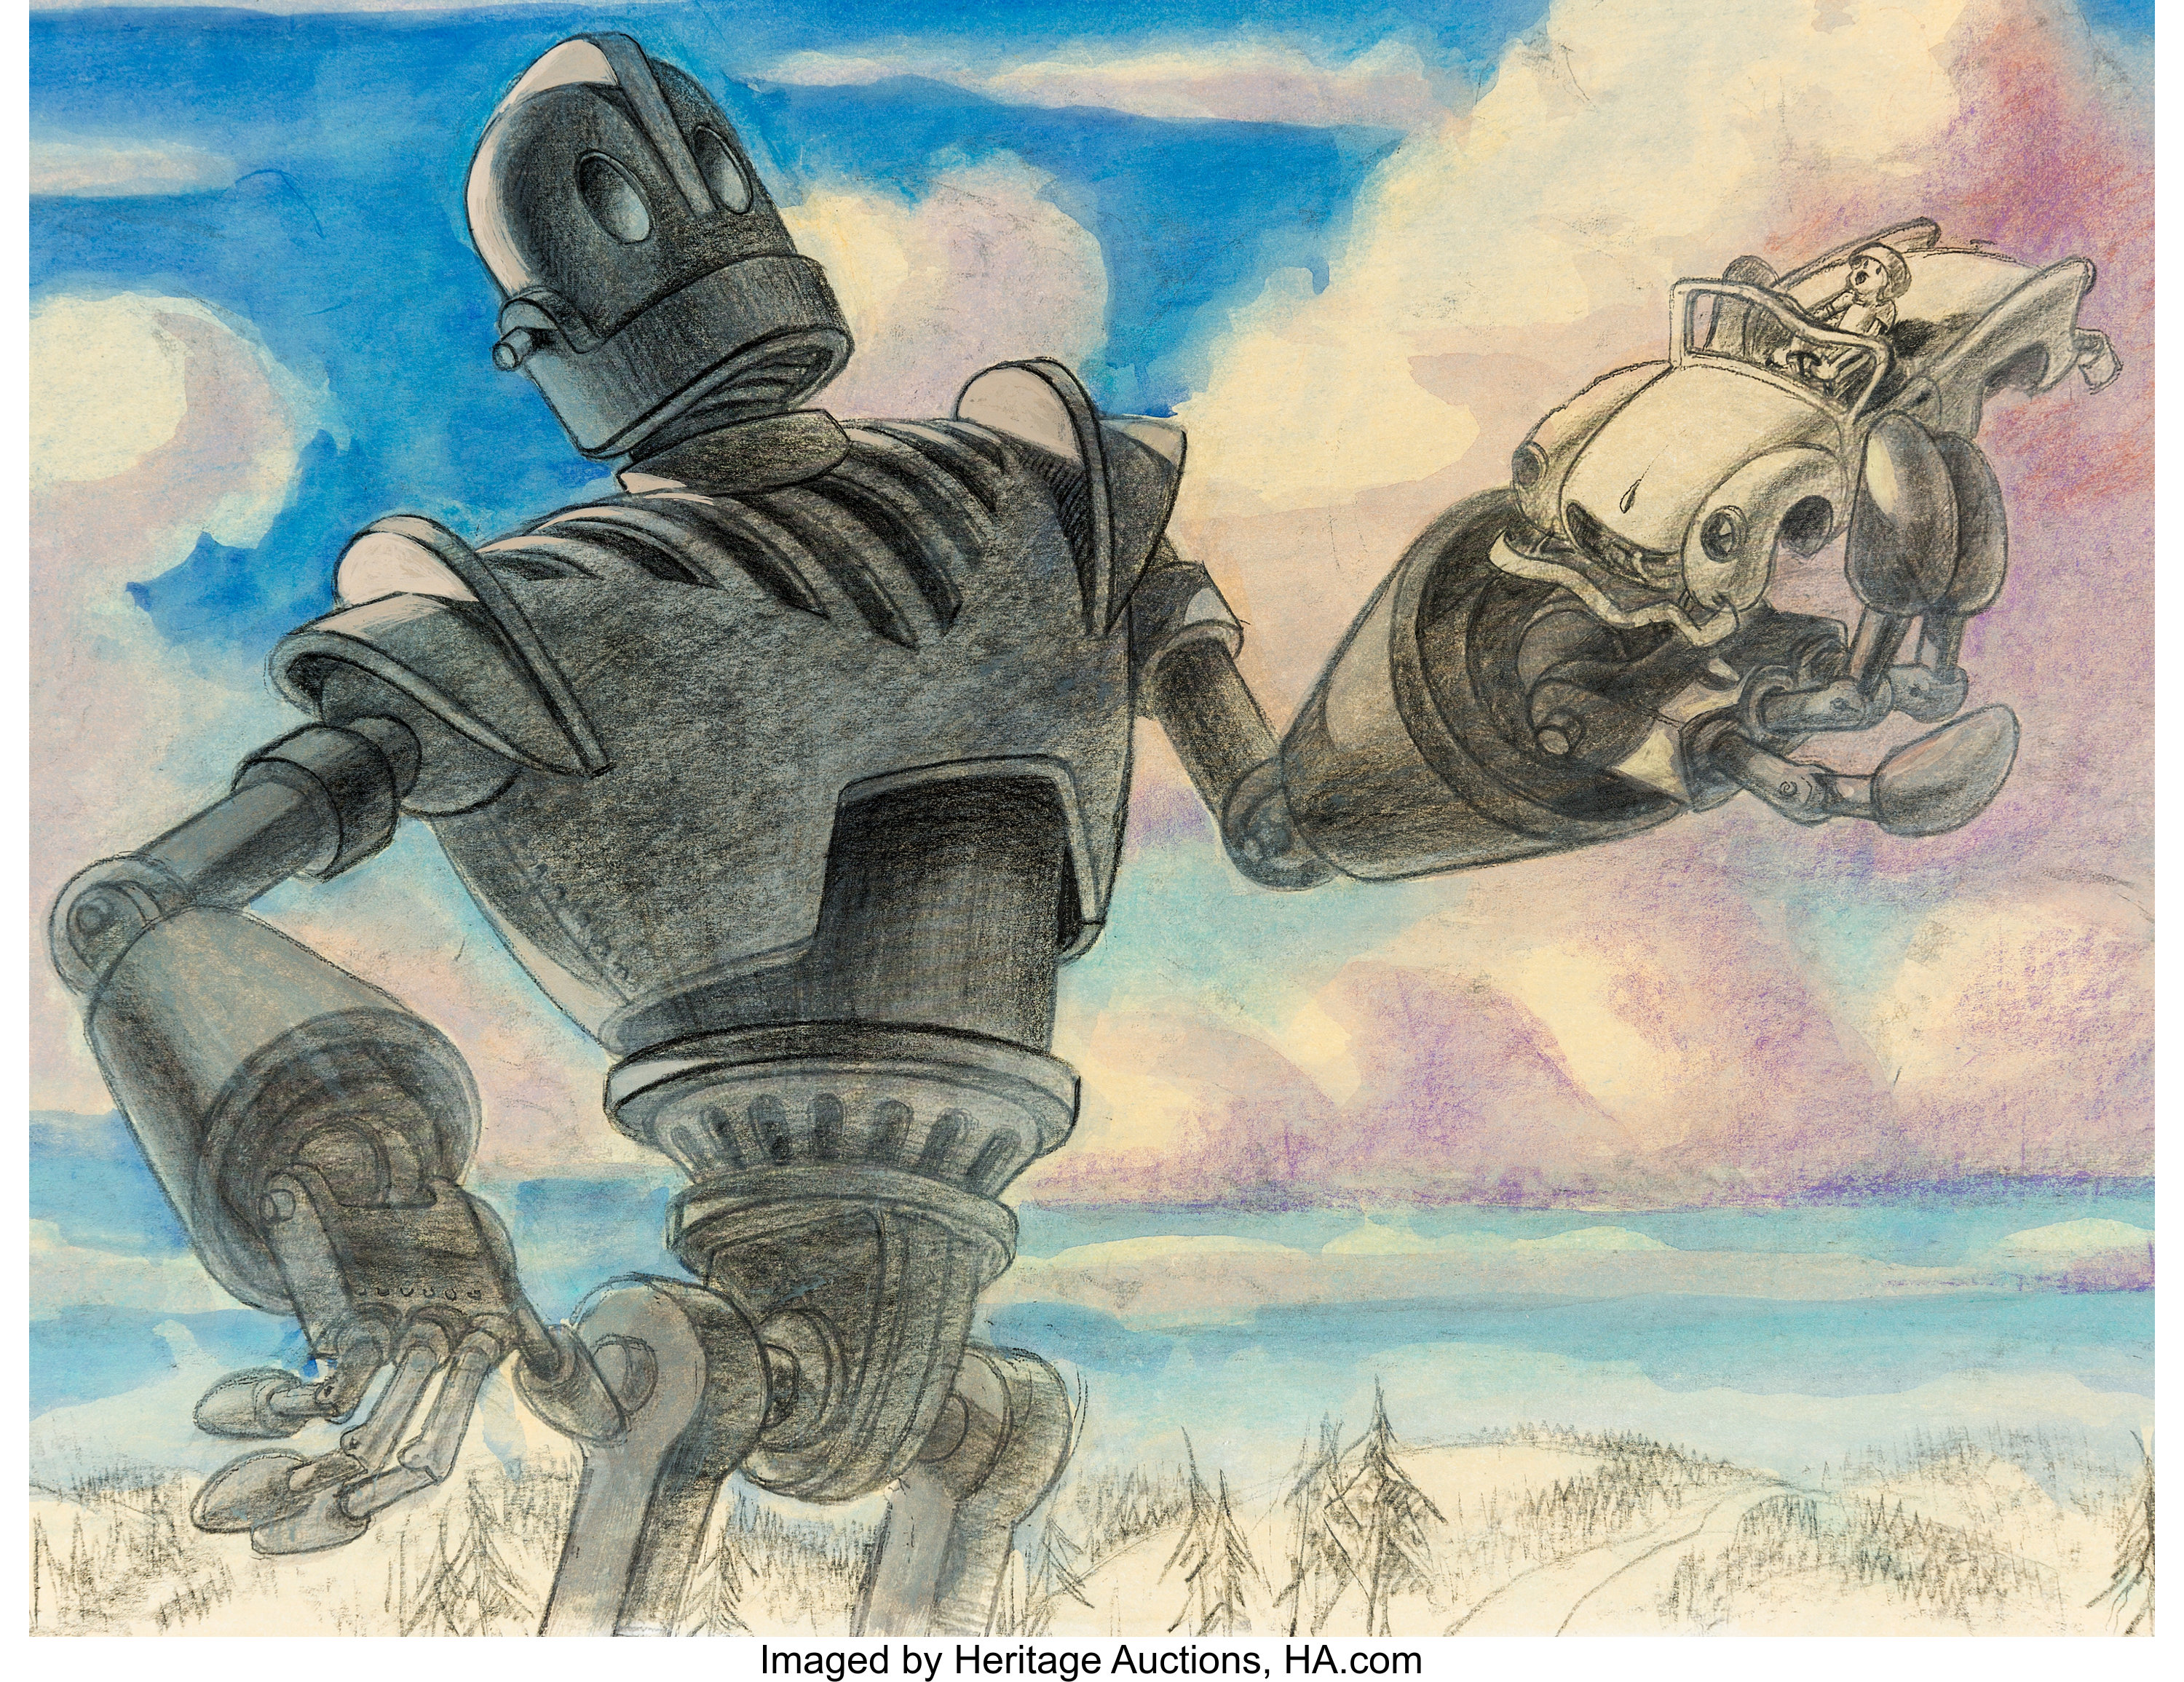 The Iron Giant Concept Art (Warner Brothers, 1999